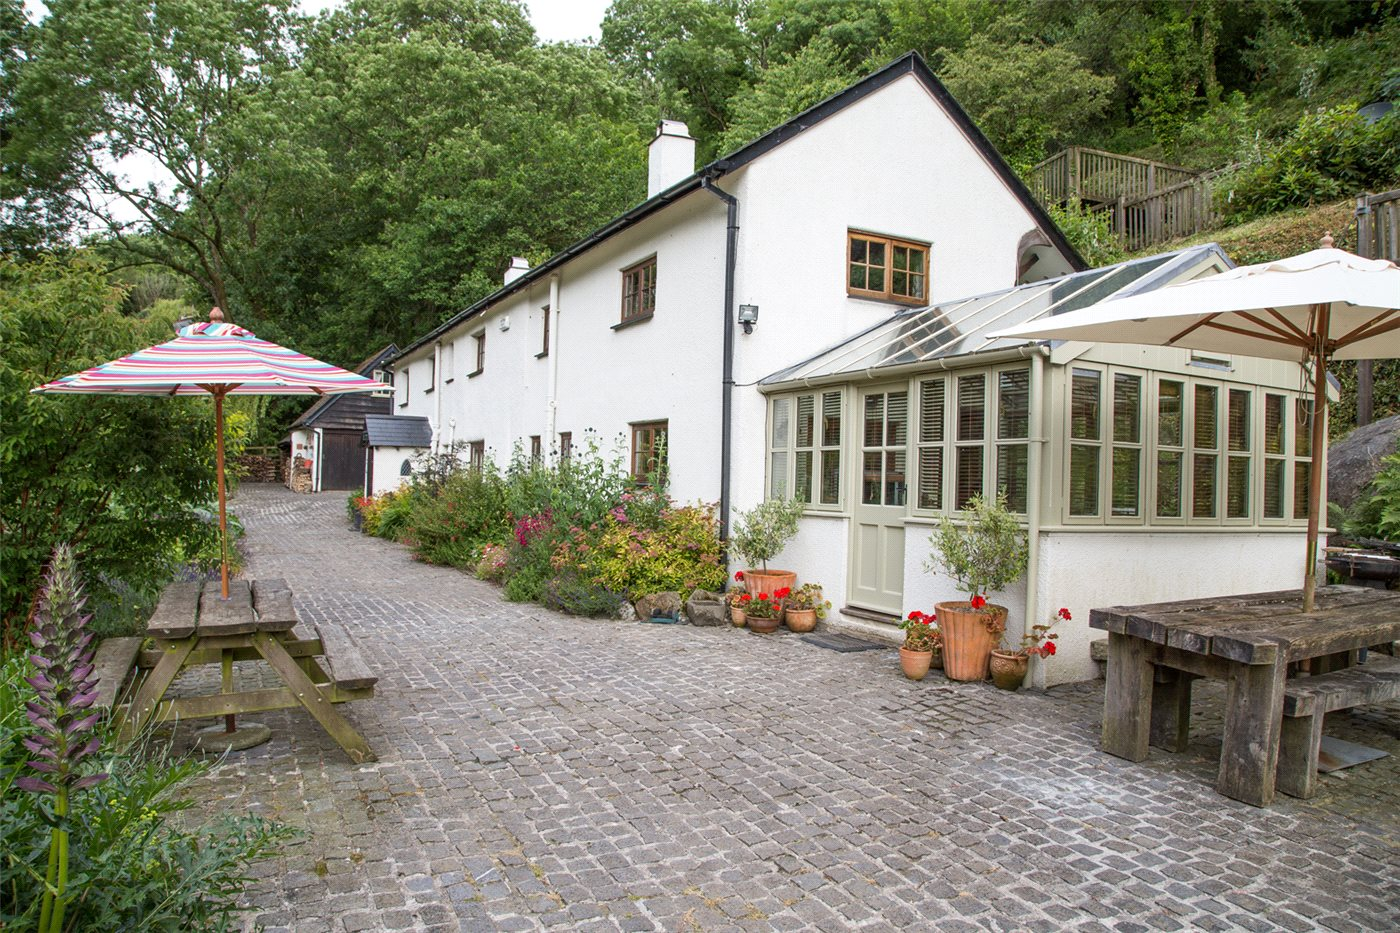 Period home with character and period feature within Dartmoor National Park